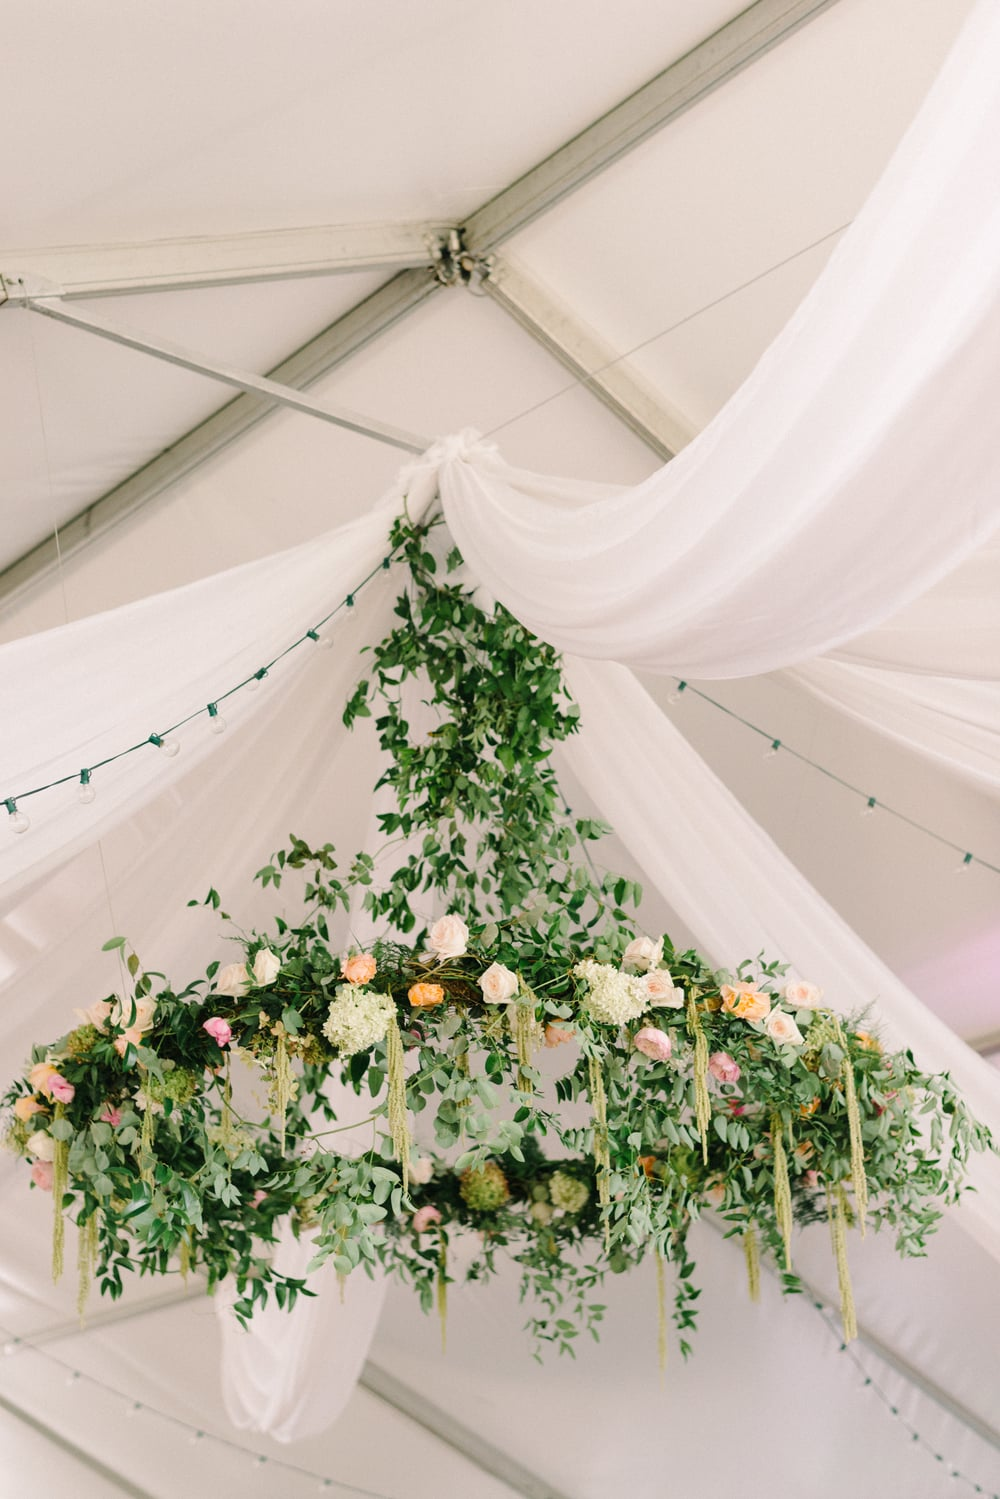 This was our initiation into floral chandeliers and we were (and still are!) so proud of this design. We covered the base with moss before wrapping tons of smilax vine and greenery around the diameter. More hydrangea, roses and hanging amaranthus added color to this beautiful piece. The tent draping and lighting helped make this stand-out piece really shine.